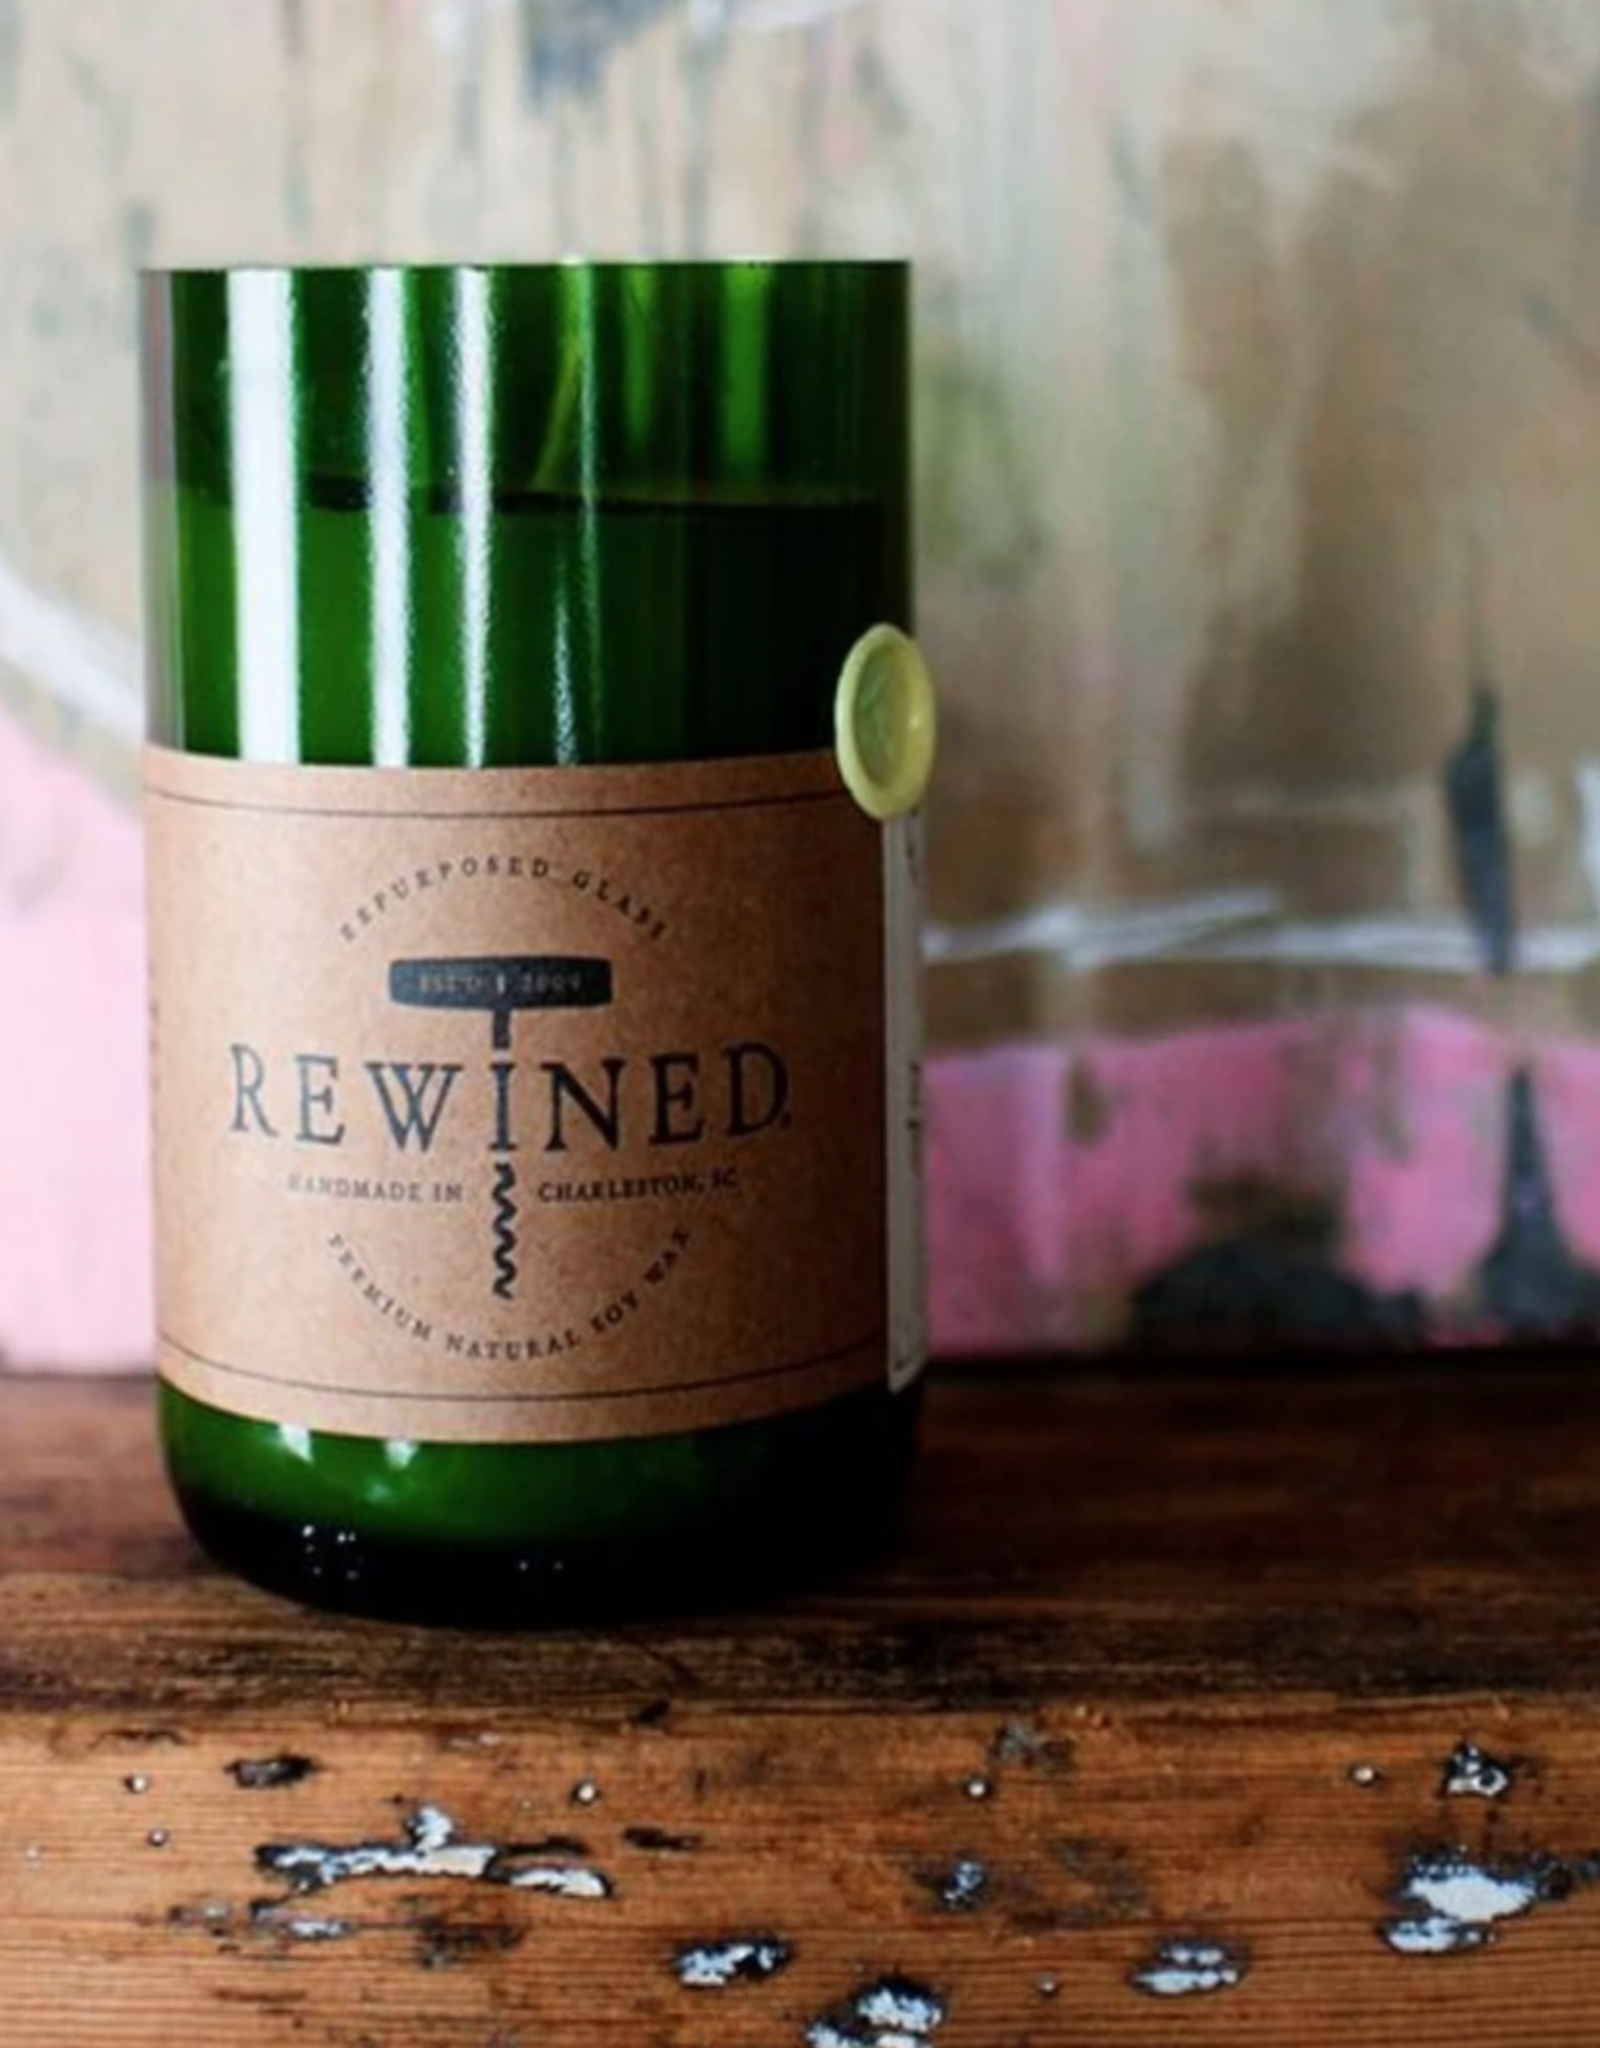 Rewined Rewined - Chardonnay Candle